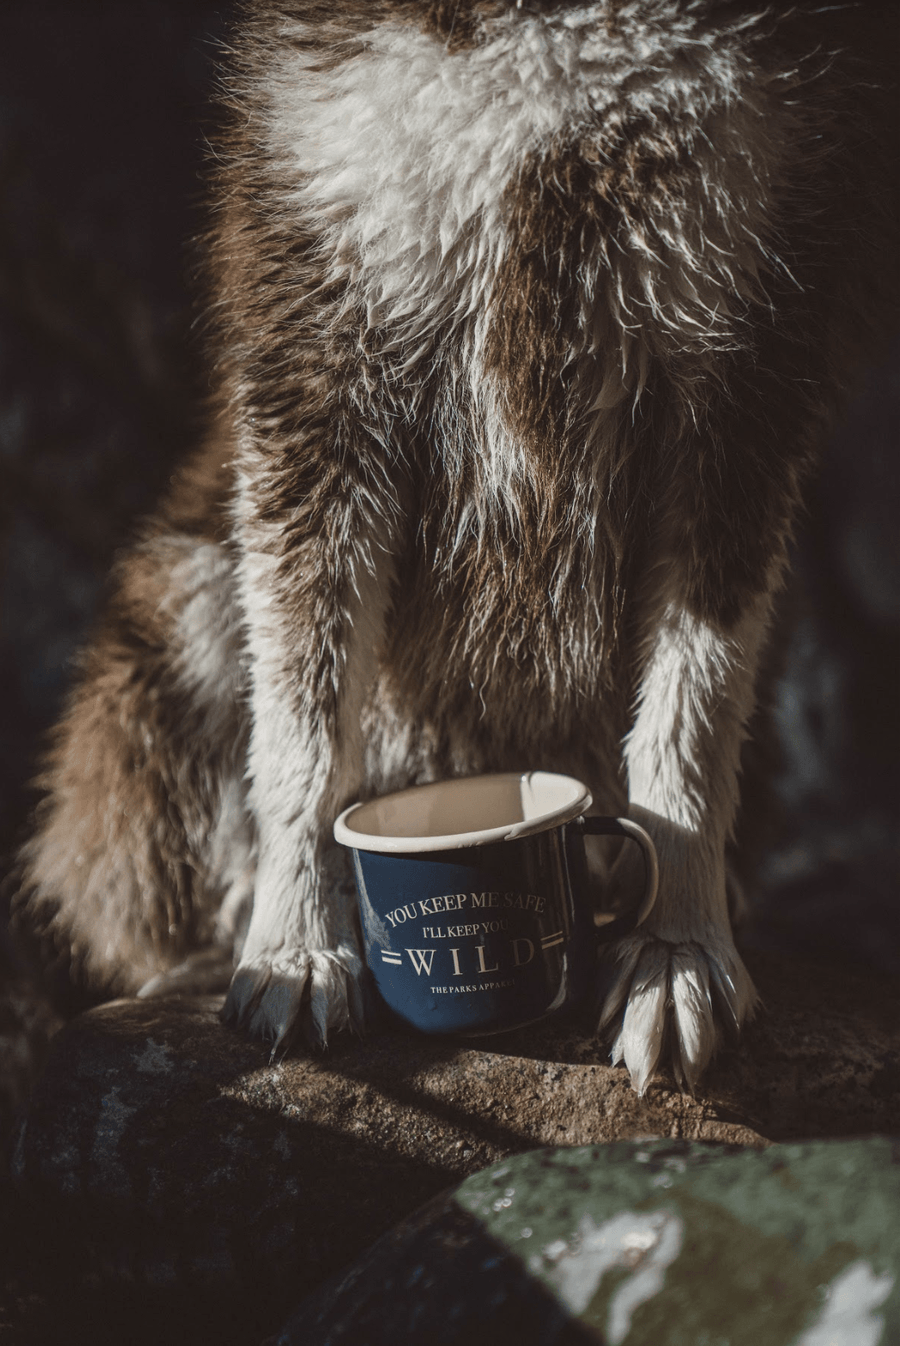 Keep Me Safe Enamel Camp Mug - Wondery, A Parks Apparel Brand